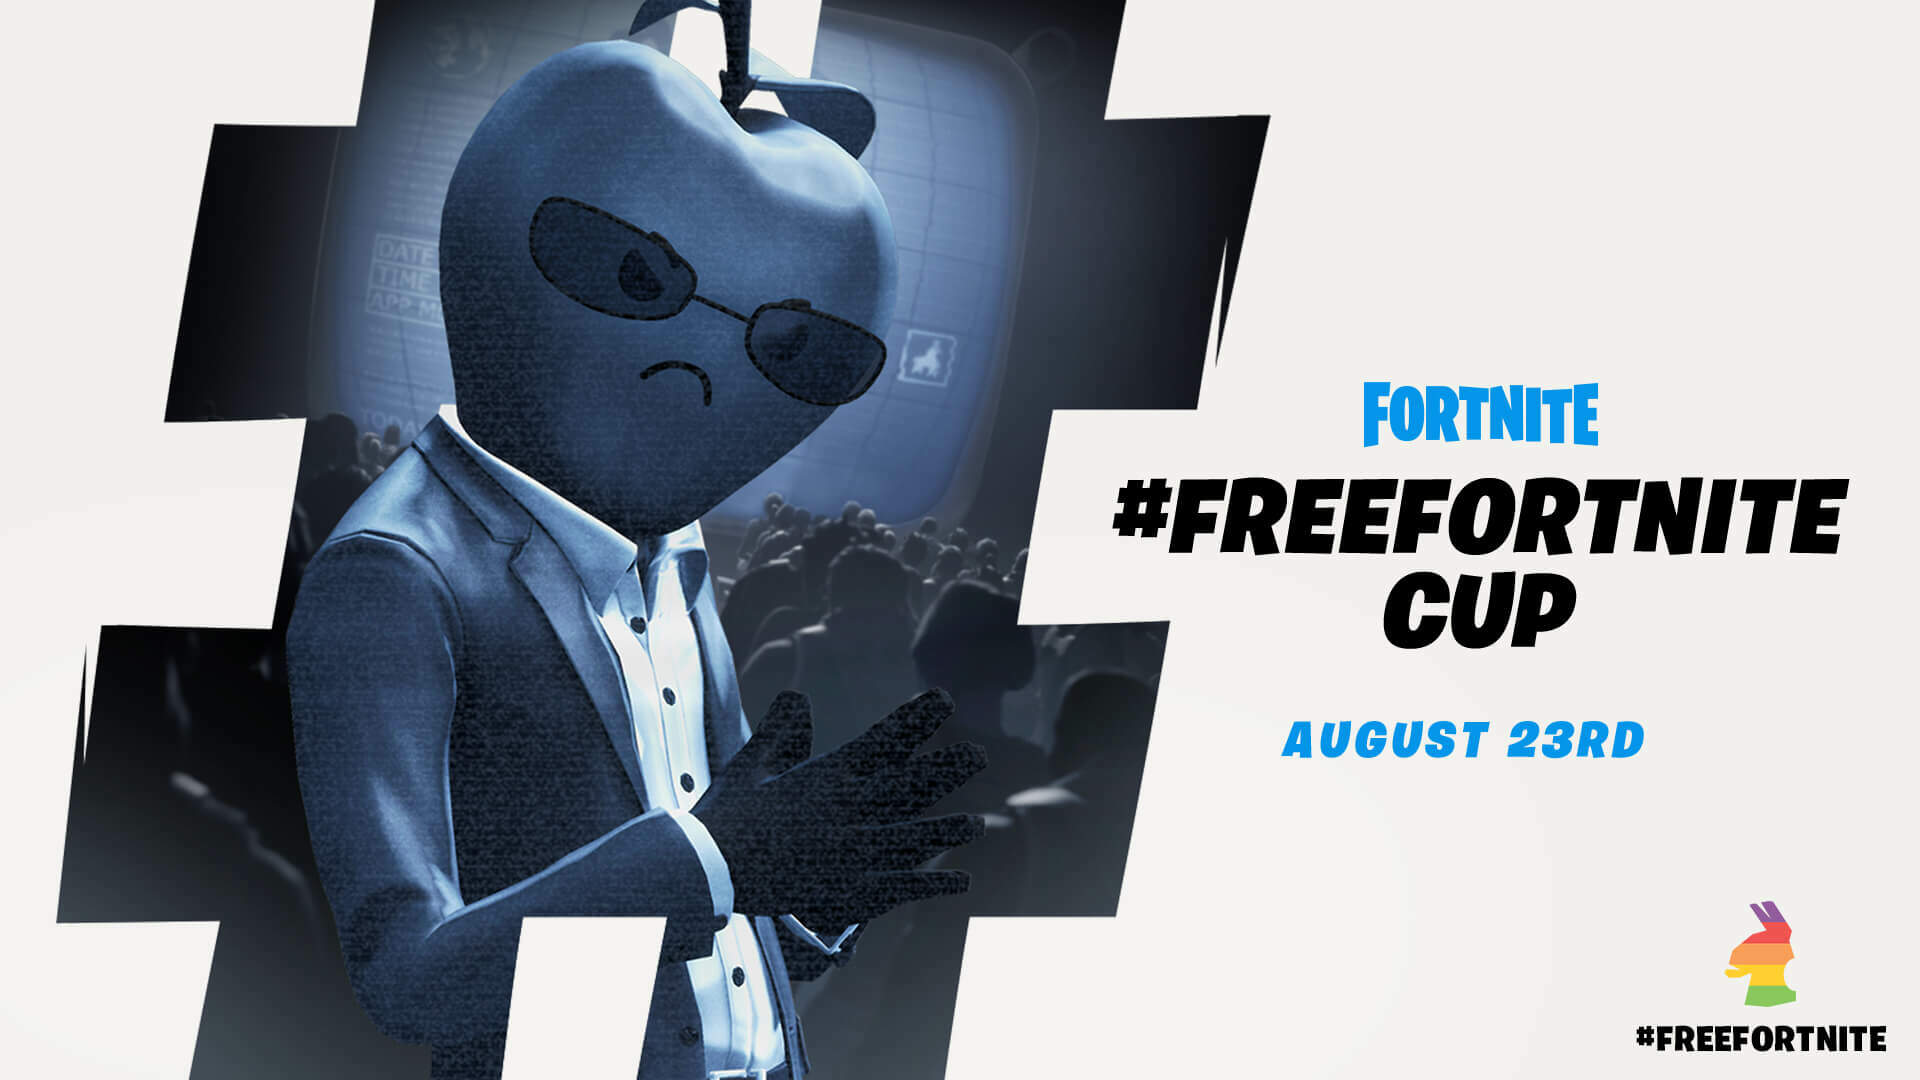 Epic Turns Apple Dispute Into a Fortnite Event With the #FreeFortnite Cup